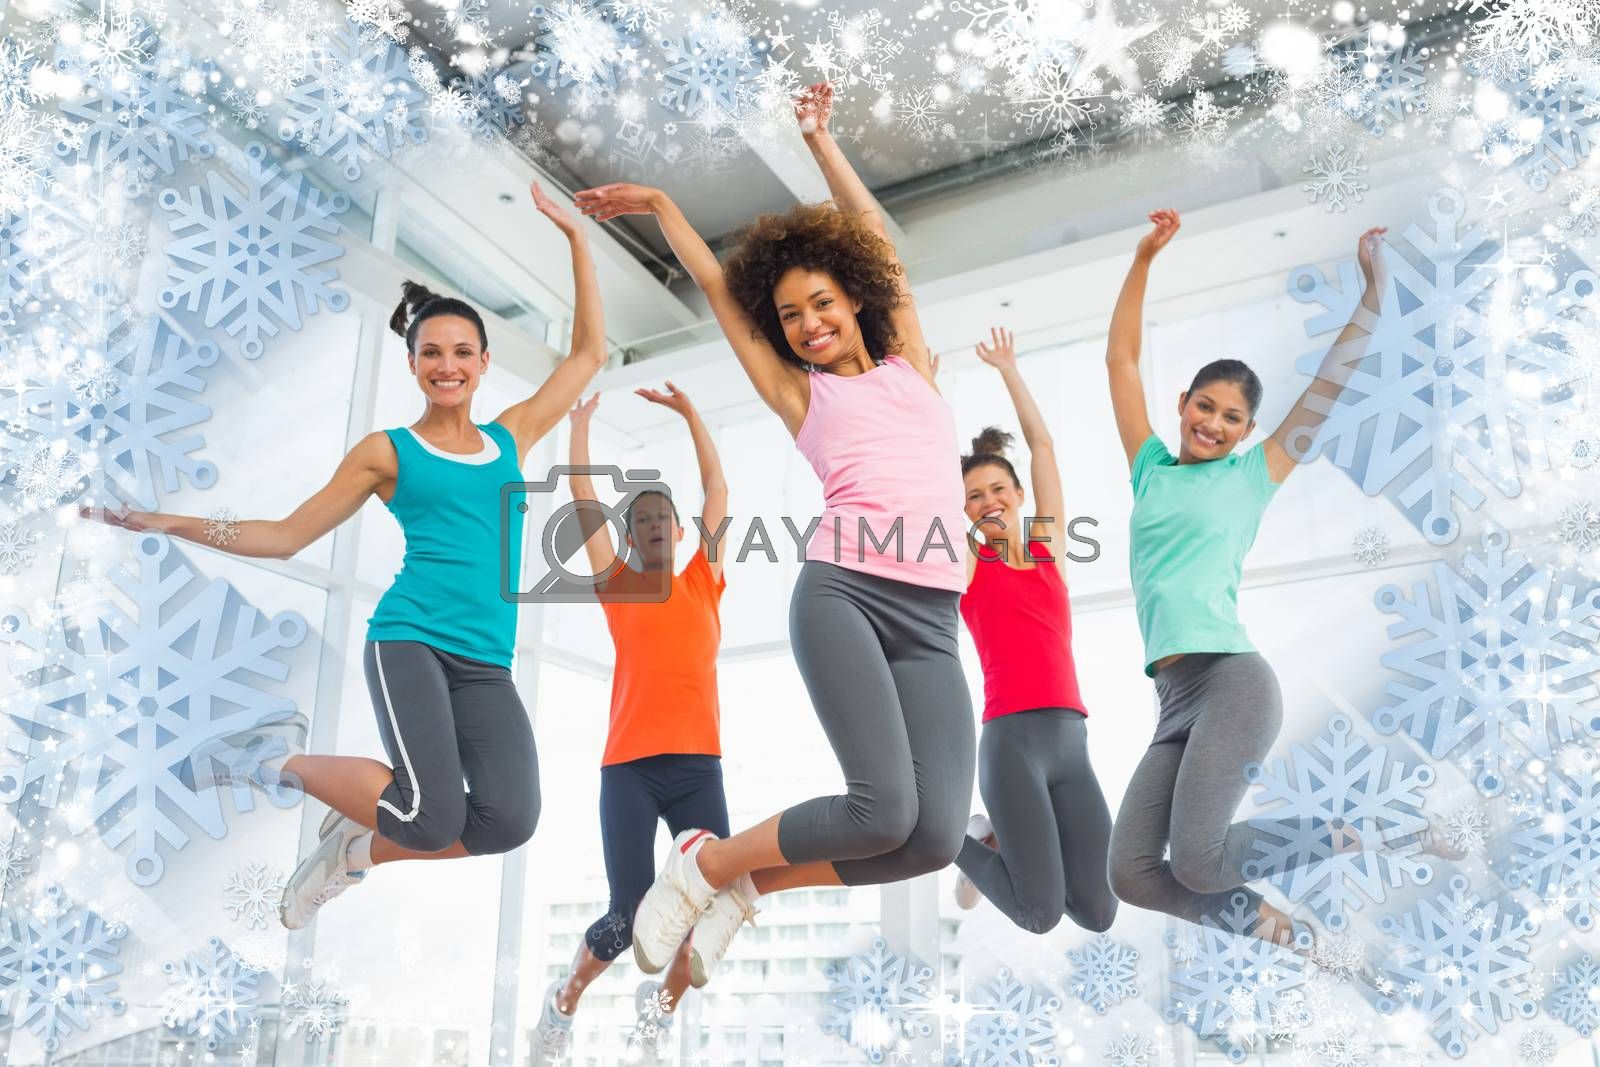 Composite image of snow frame against fitness class and instructor jumping in fitness studio